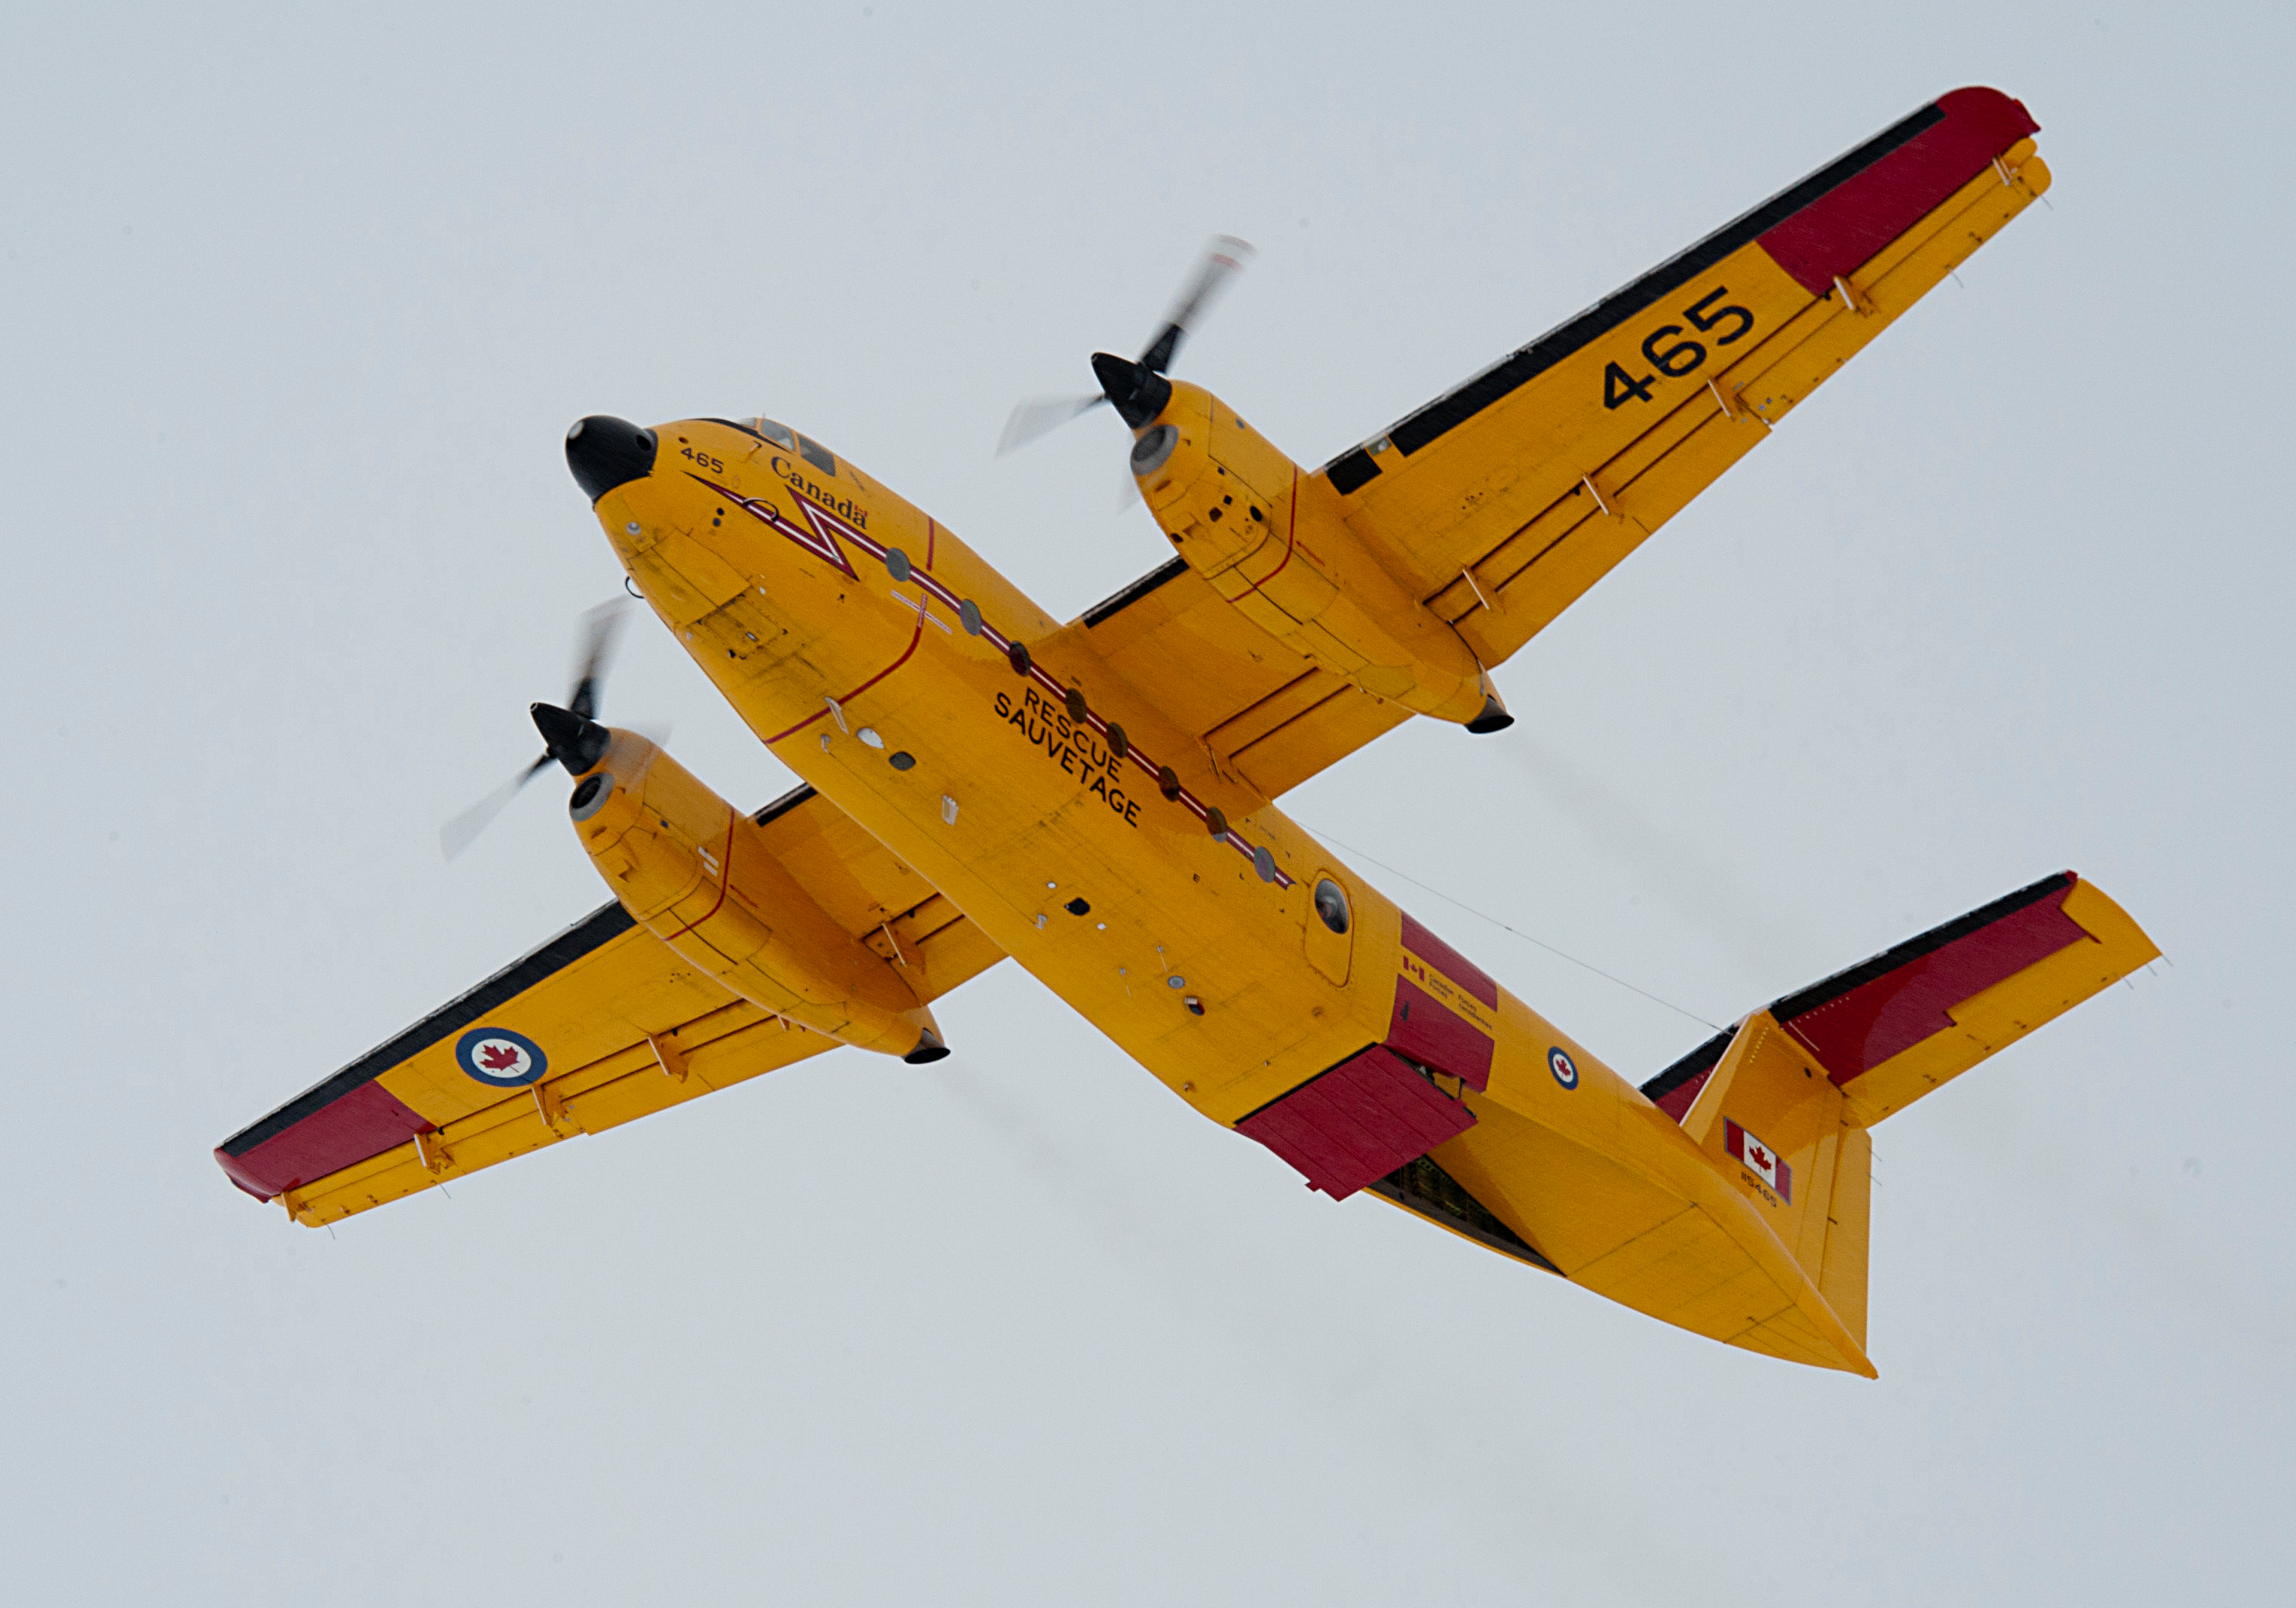 The Airbus C295W will replace the RCAF's fixed wing search and rescue (FWSAR) capability currently being provided by the CC-115 Buffalo (seen here) and CC-130H Hercules. PHOTO: Corporal Jax Kennedy, IS2012-3015-03